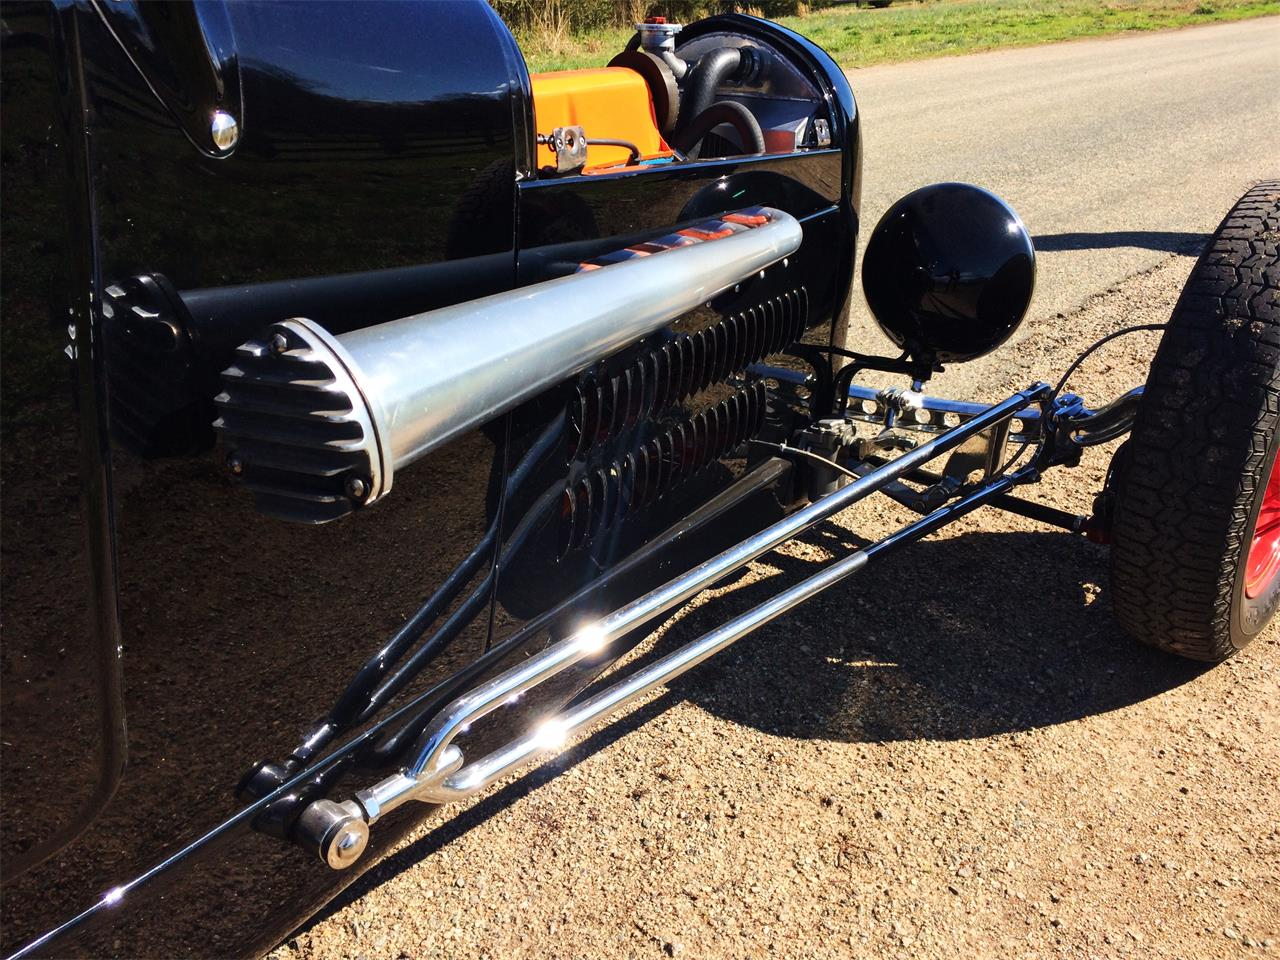 Large Picture of Classic 1923 Ford Roadster located in Virginia - $22,500.00 Offered by a Private Seller - PQ8K